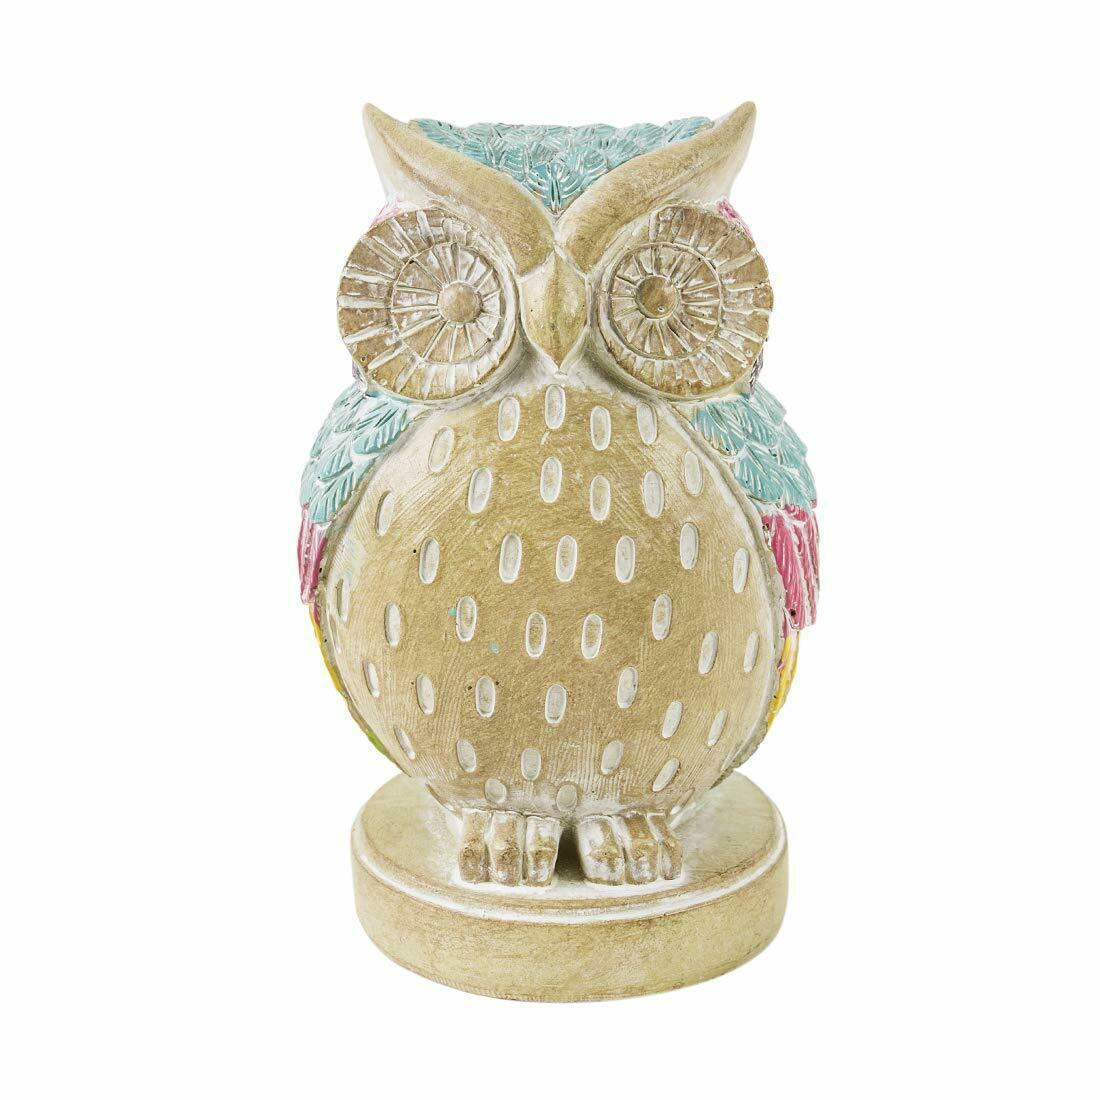 Primary image for Owls Wise Musings Figurine Poly Resin Handmade Size 8.5cms x 7.5cms x 13cms